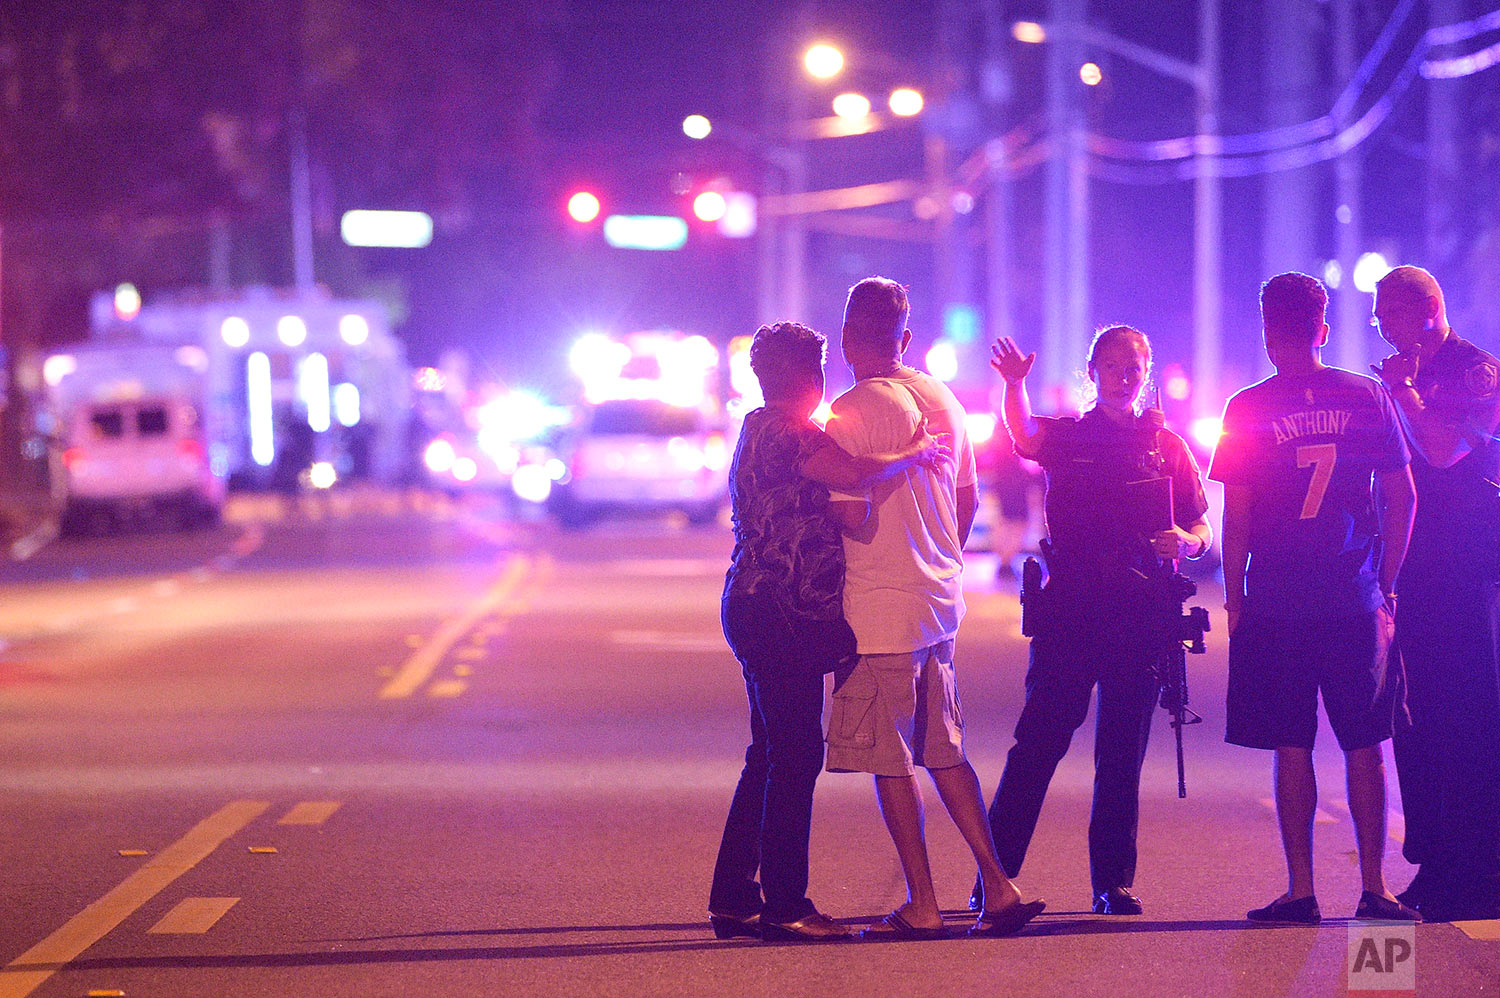 In this Sunday, June 12, 2016 file photo, police officers direct family members away from a fatal shooting at Pulse Orlando nightclub in Orlando, Fla. A gunman massacred 49 people and wounded many others at the gay nightclub. (AP Photo/Phelan M. Ebenhack)